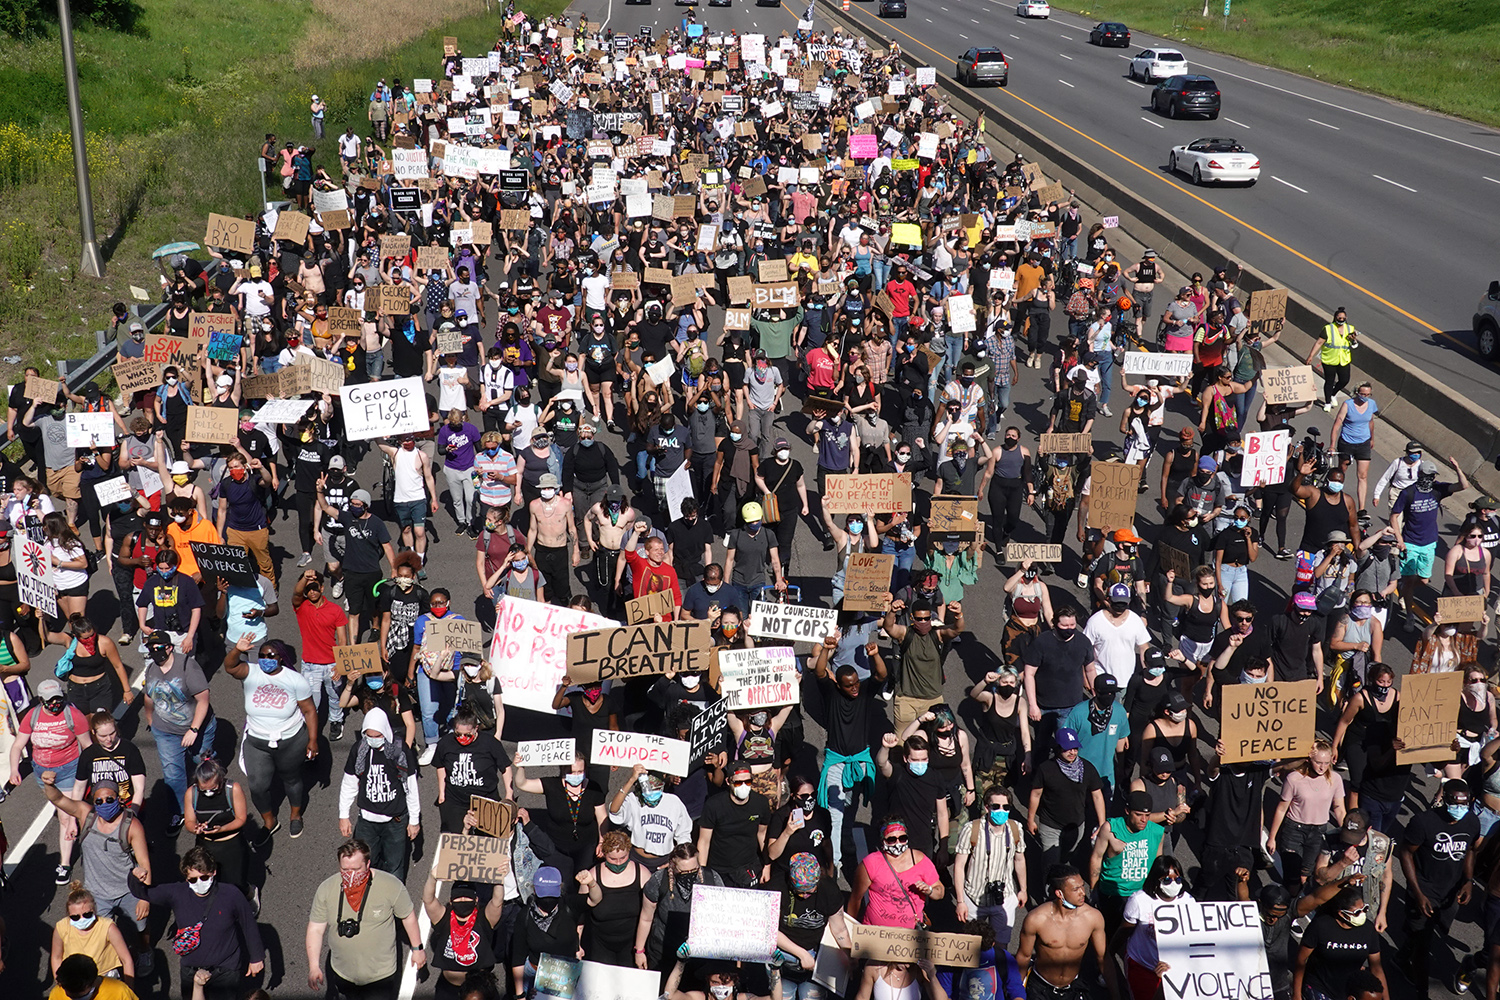 Demonstrators march along Interstate 94 in St. Paul, Minnesota, on May 31 in a protest against police brutality and the death of George Floyd. Scott Olson/Getty Images